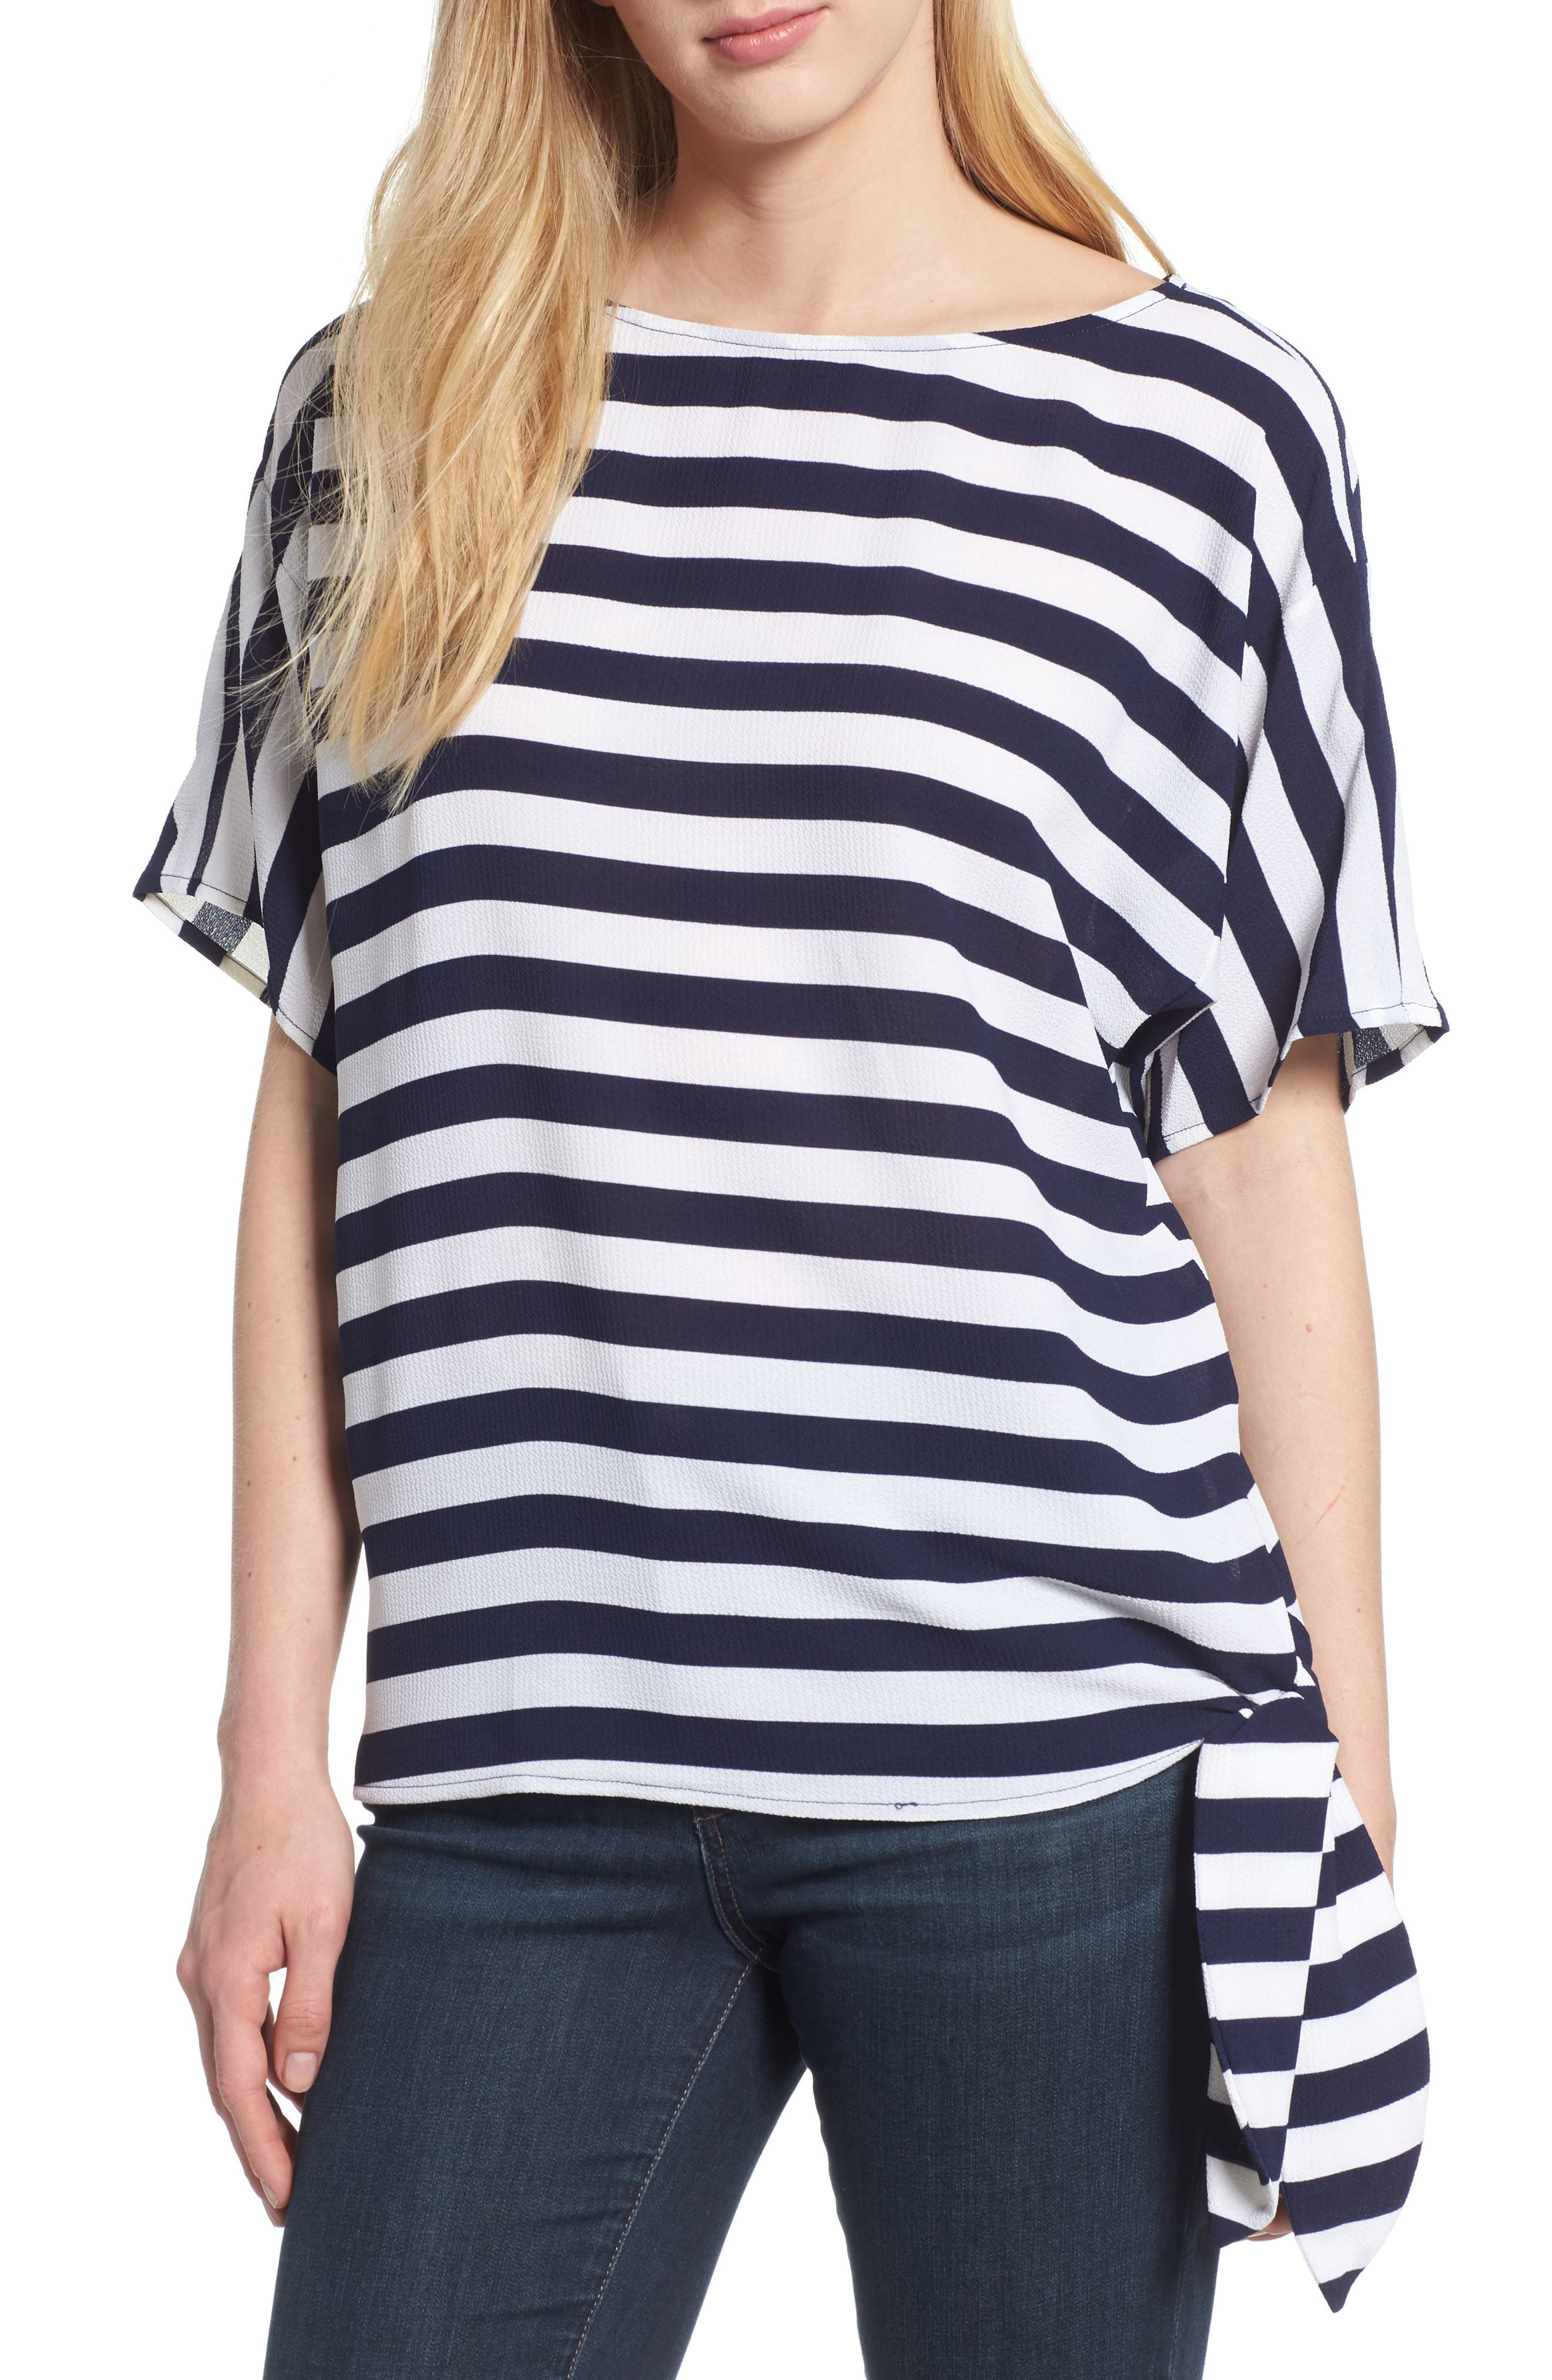 KORS MICHAEL KORS MICHAEL MICHAEL KORS SIDE TIE STRIPED TOP